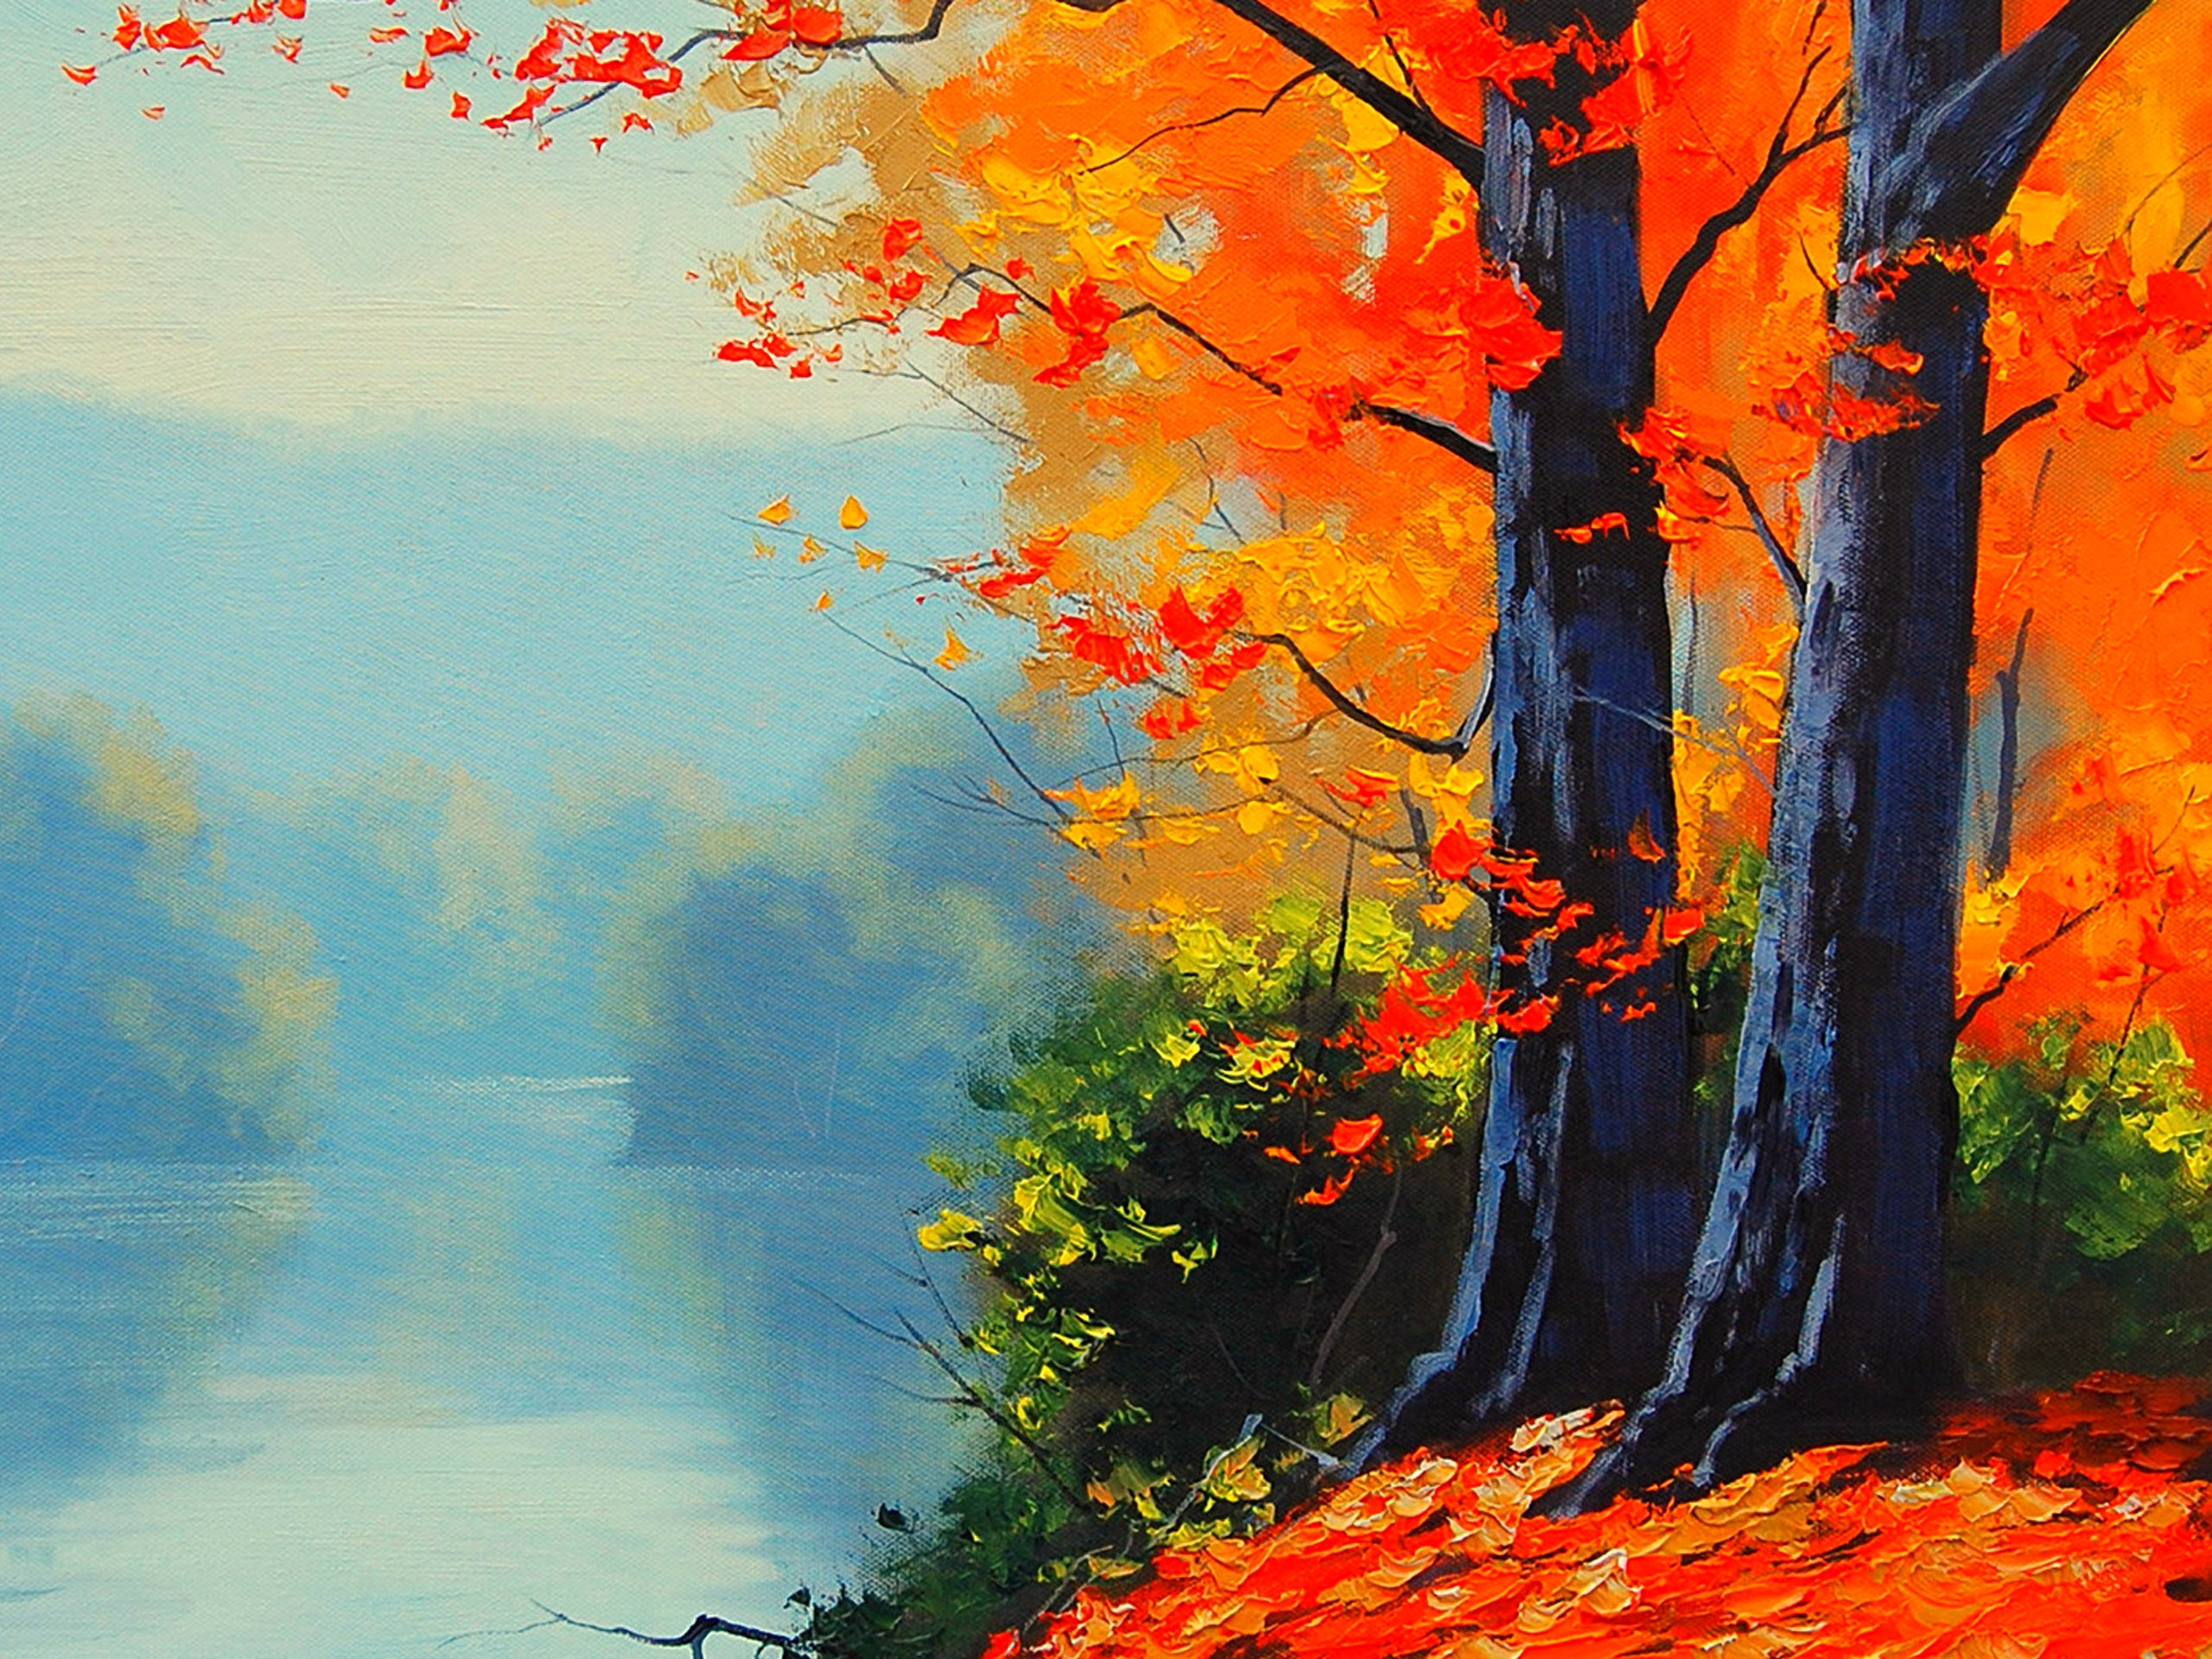 Pretty painting wallpaper 42469 2560x1920 px for Pretty wallpaper for walls